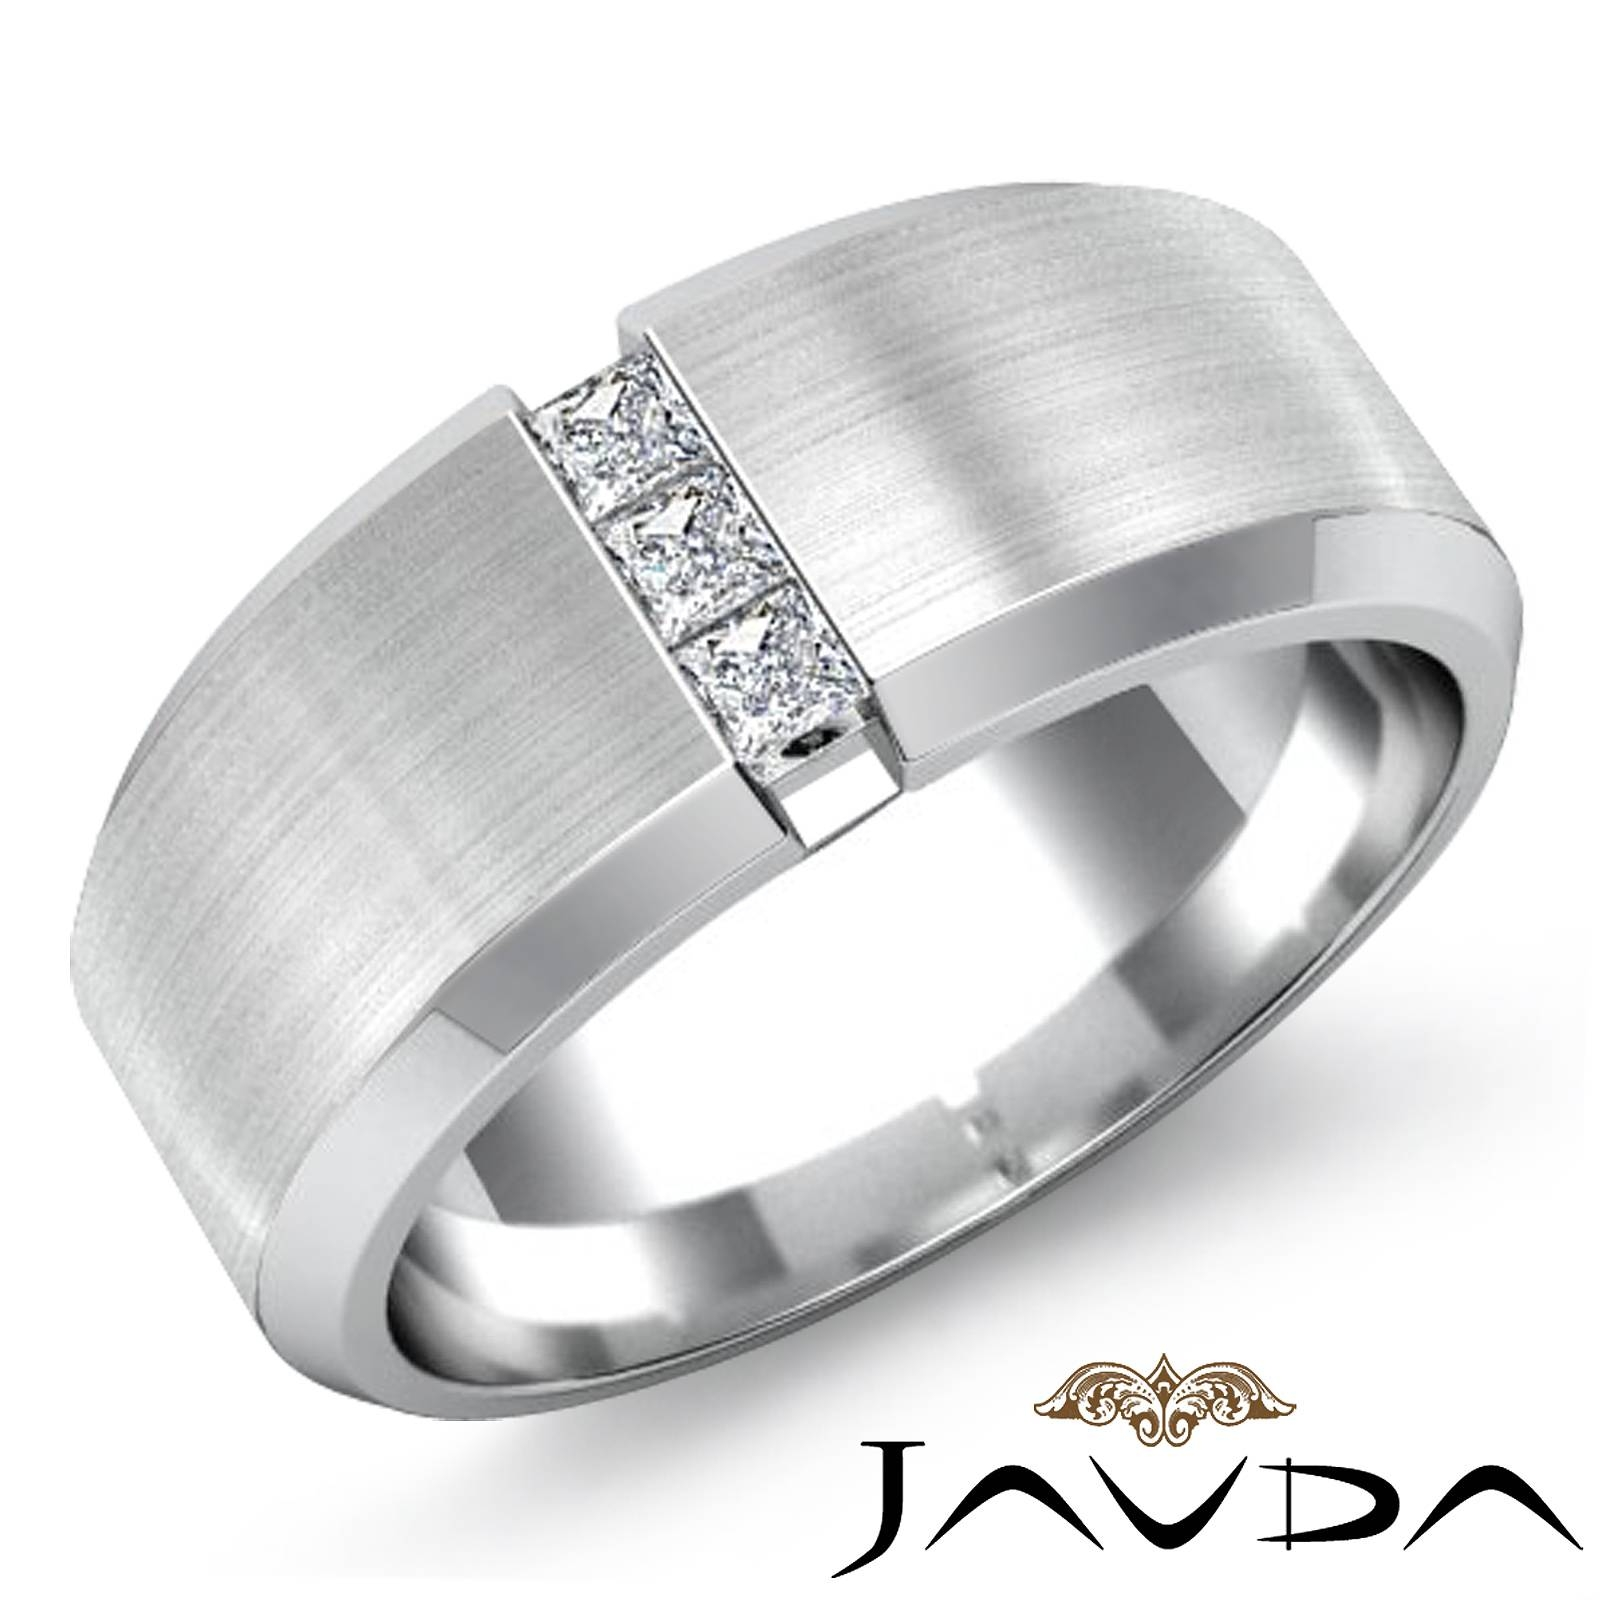 Engagement Rings : Amazing Engagement Ring Band Styles Mens Gold Throughout Men's Wedding Bands Styles (View 5 of 15)